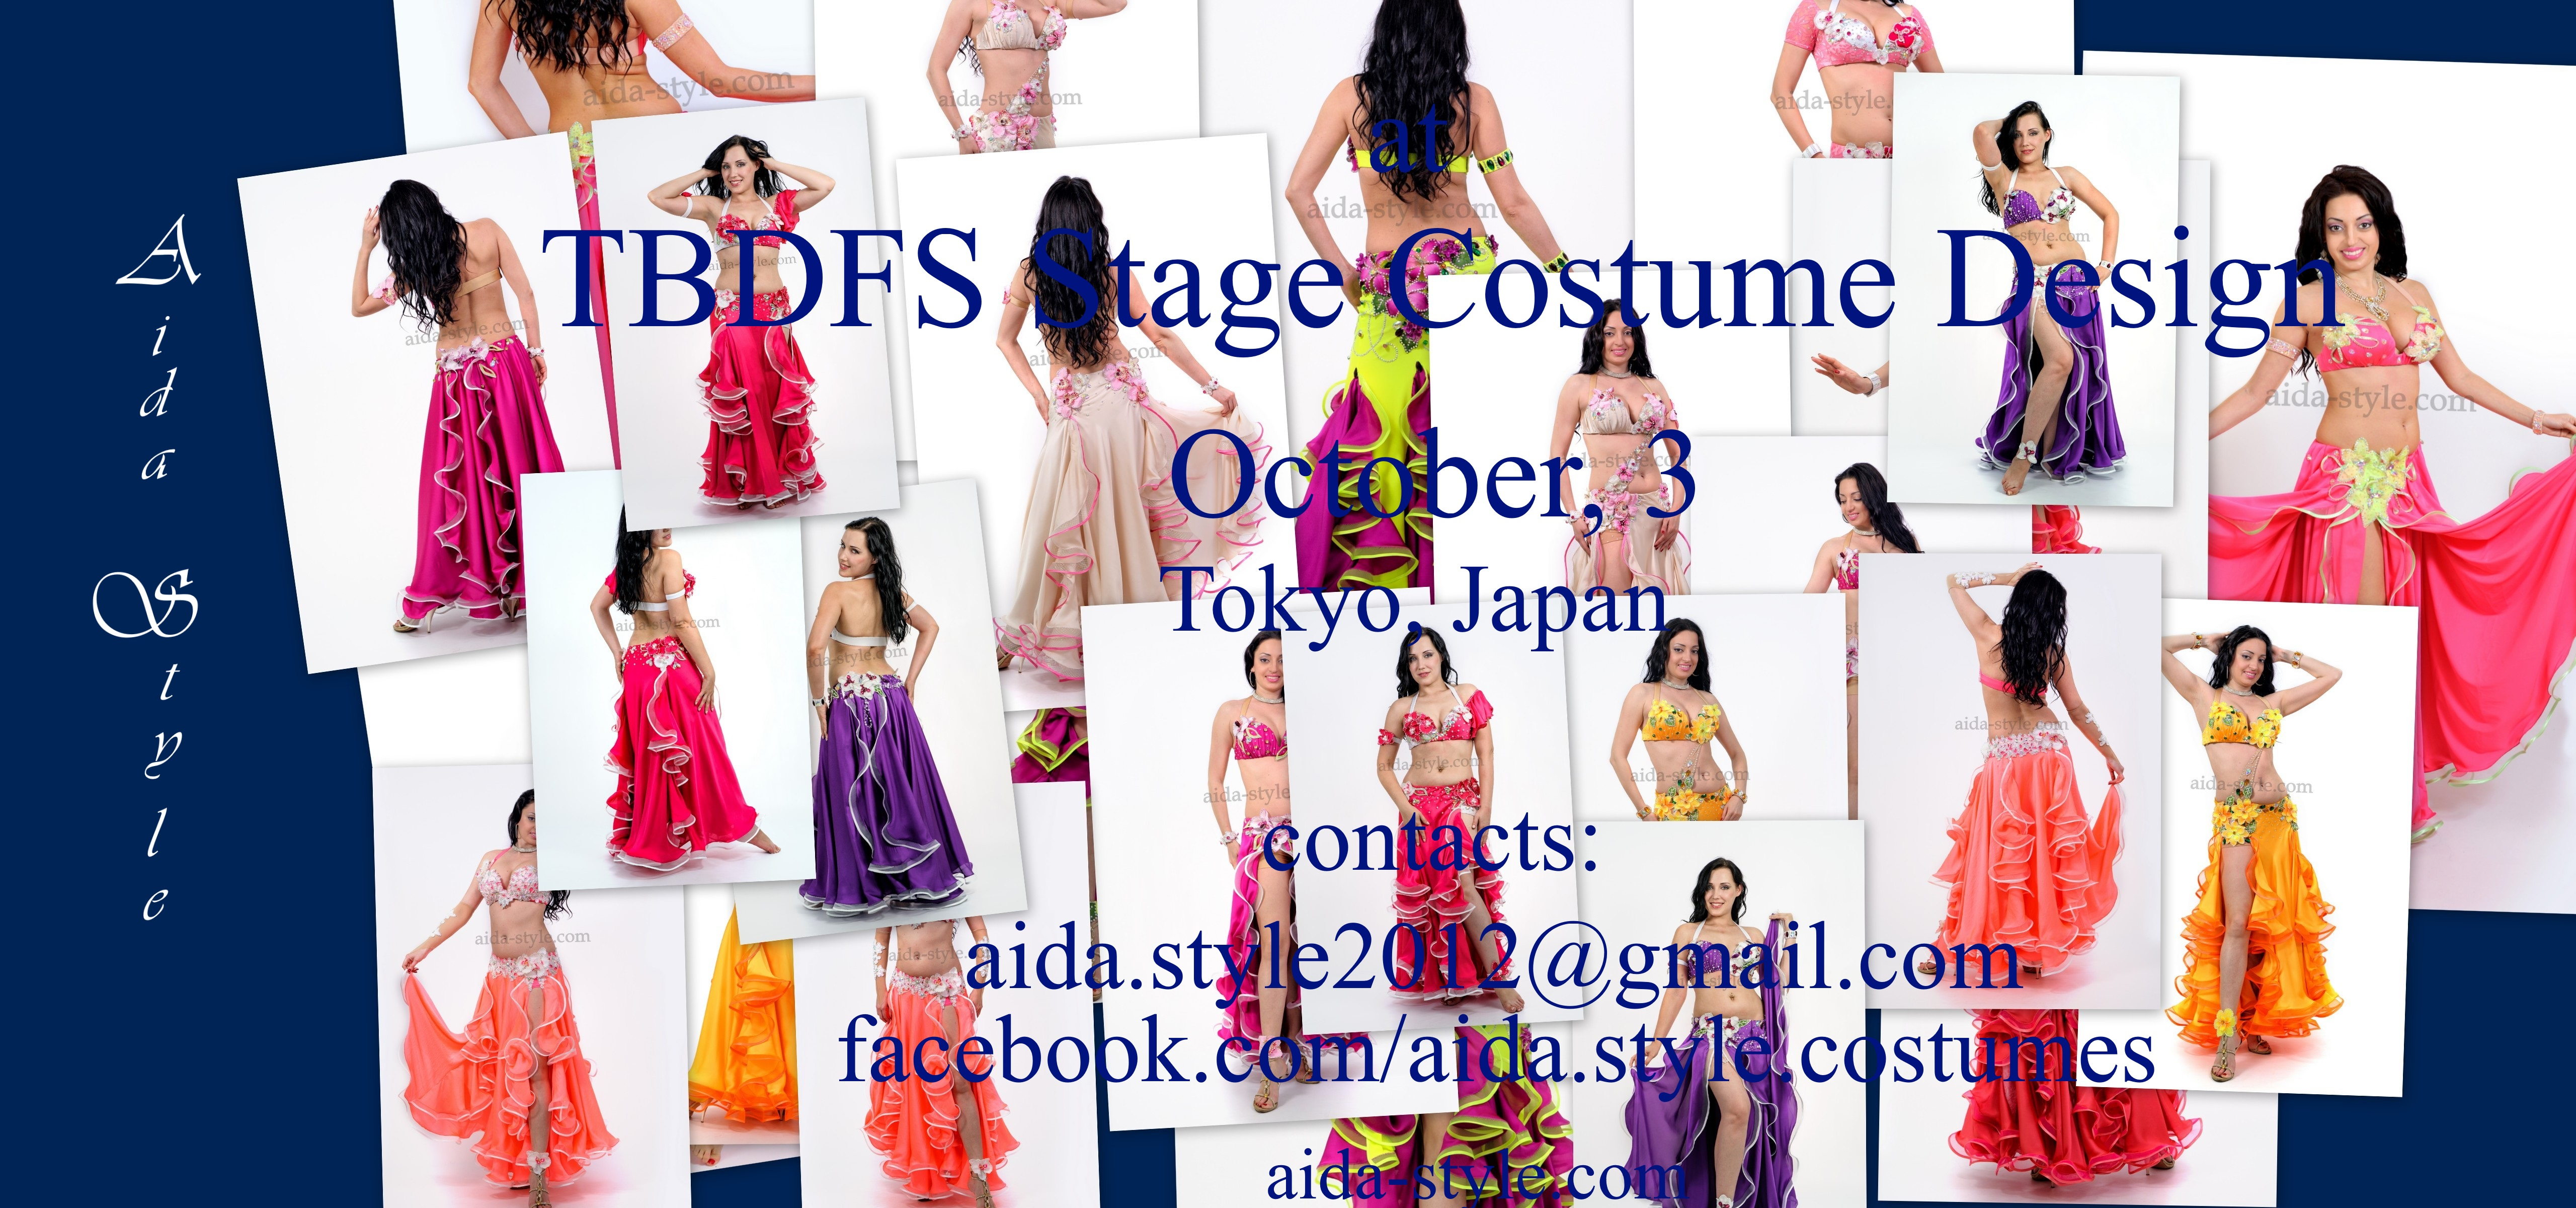 Aida Style at TBDFS Stage Costume Design 2015